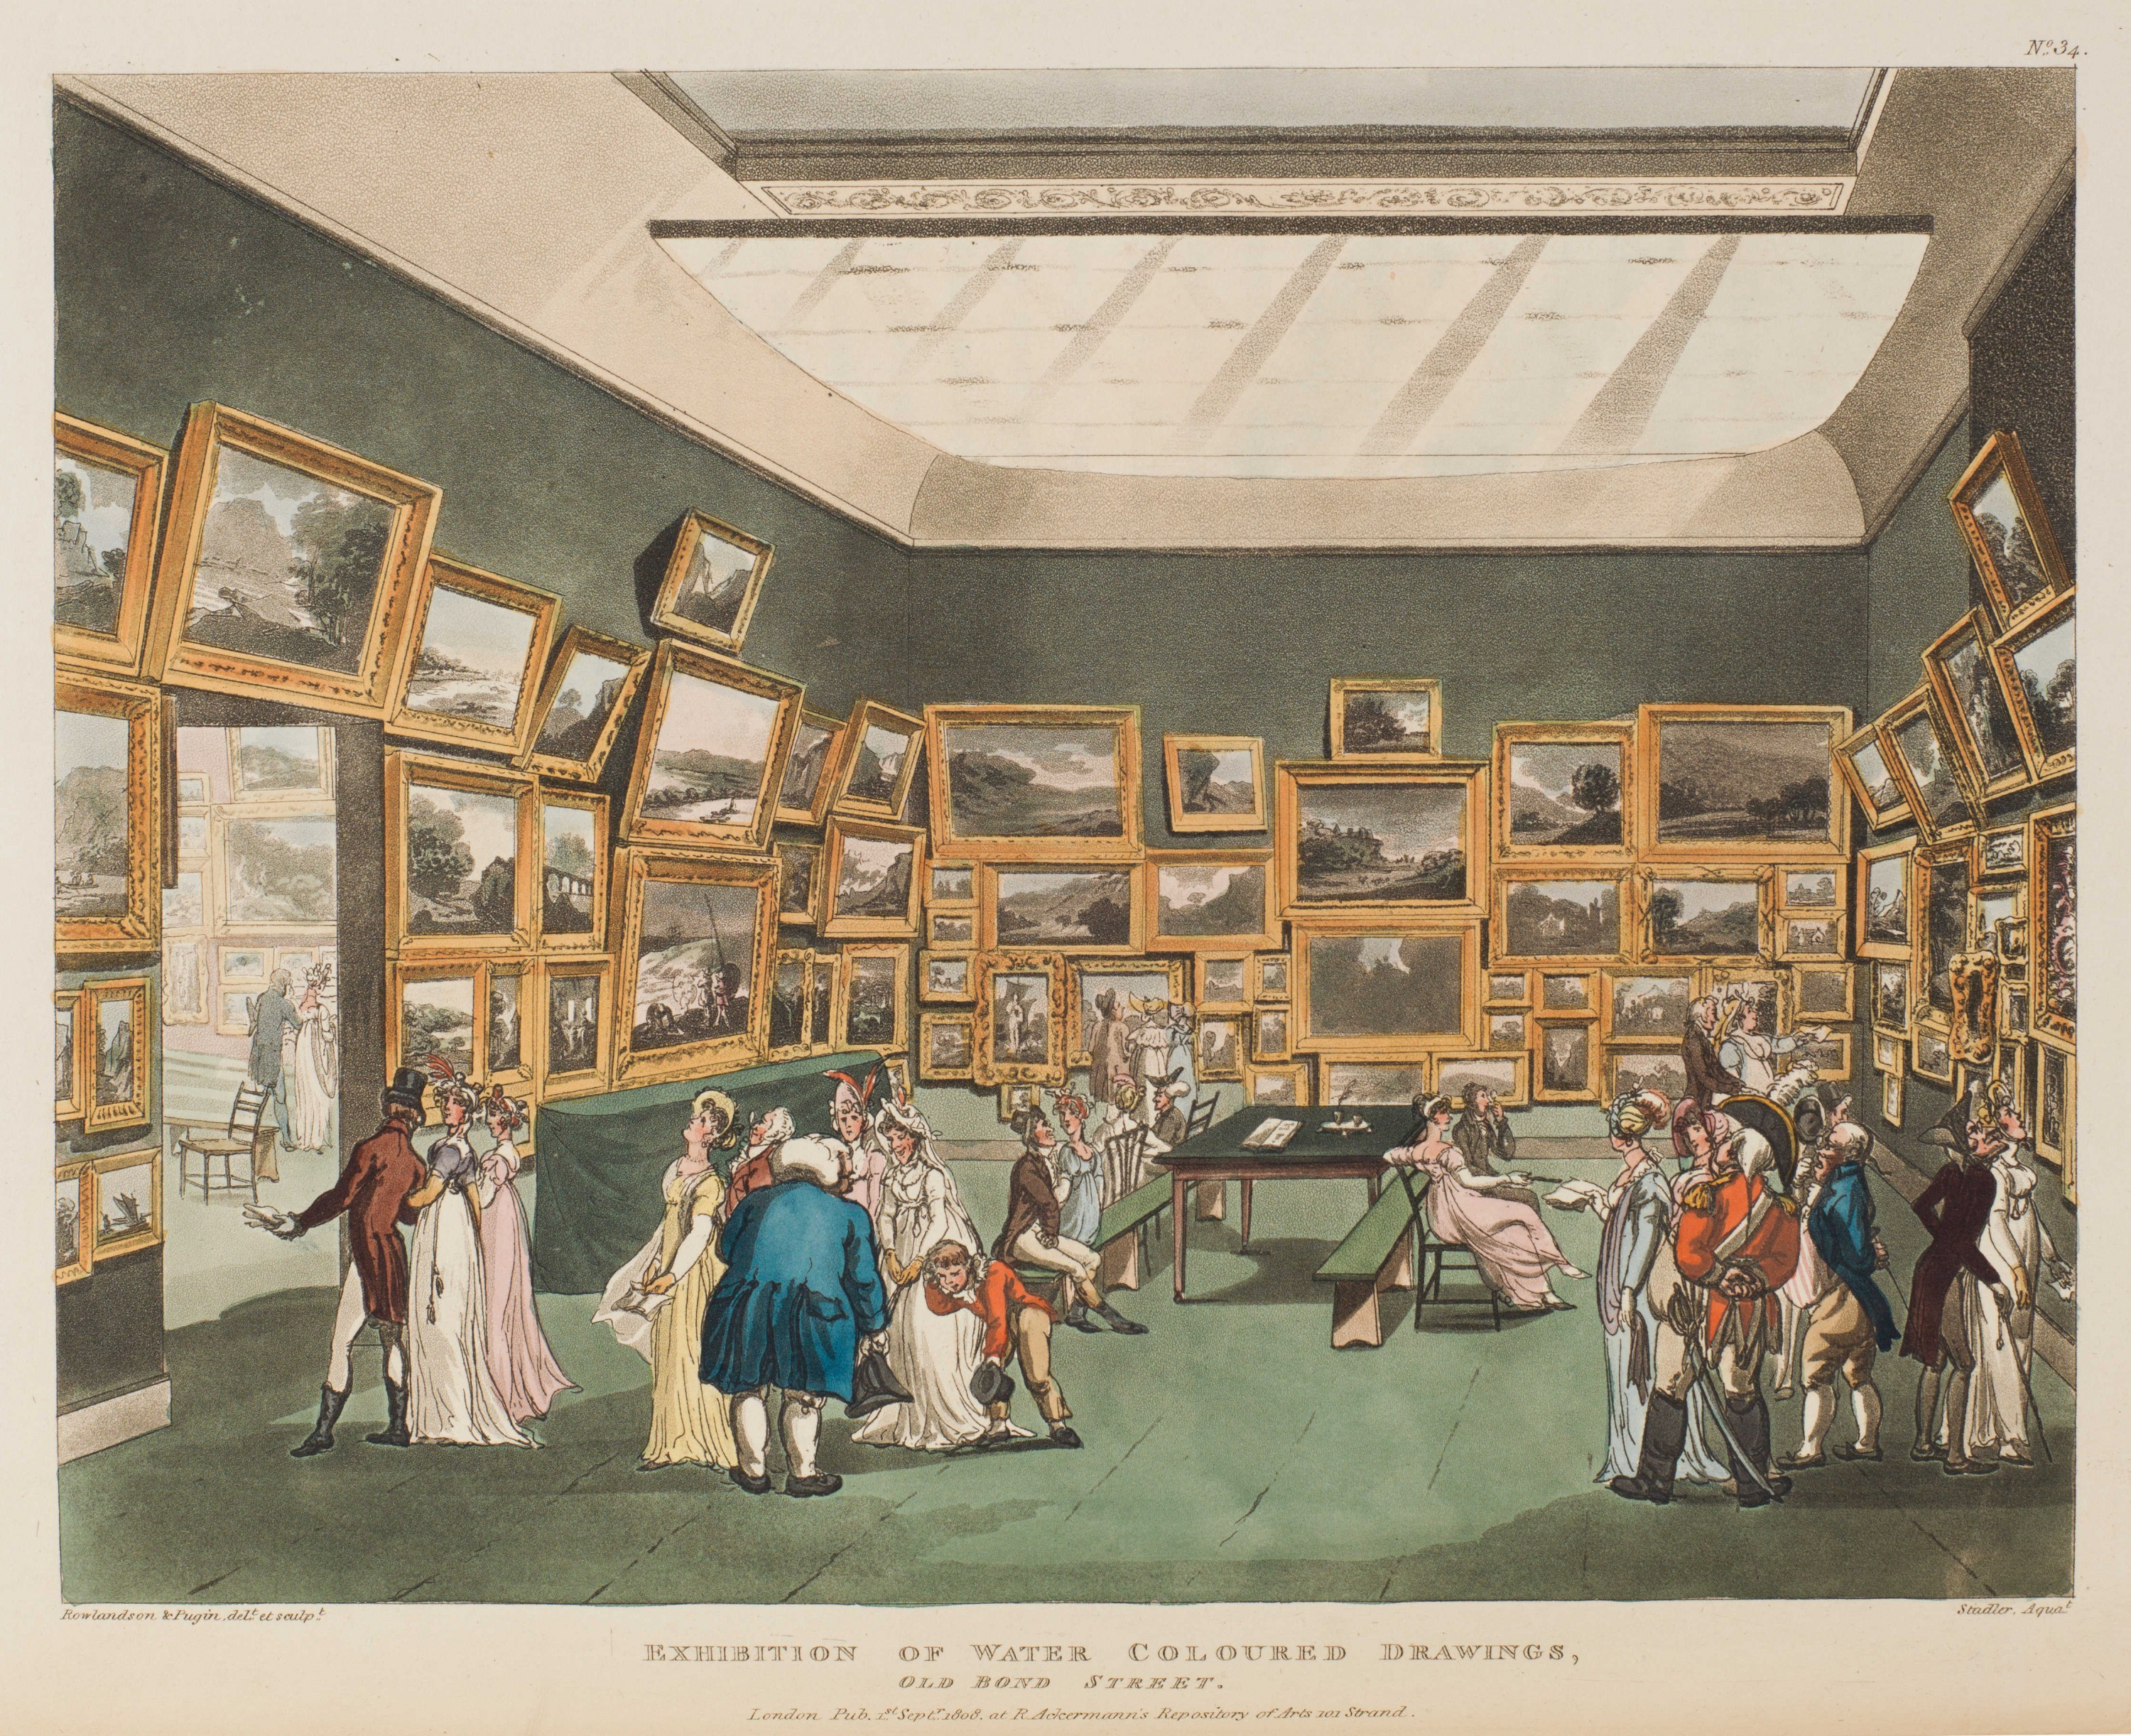 034 - Exhibition of Water Colour Drawings, Old Bond Street